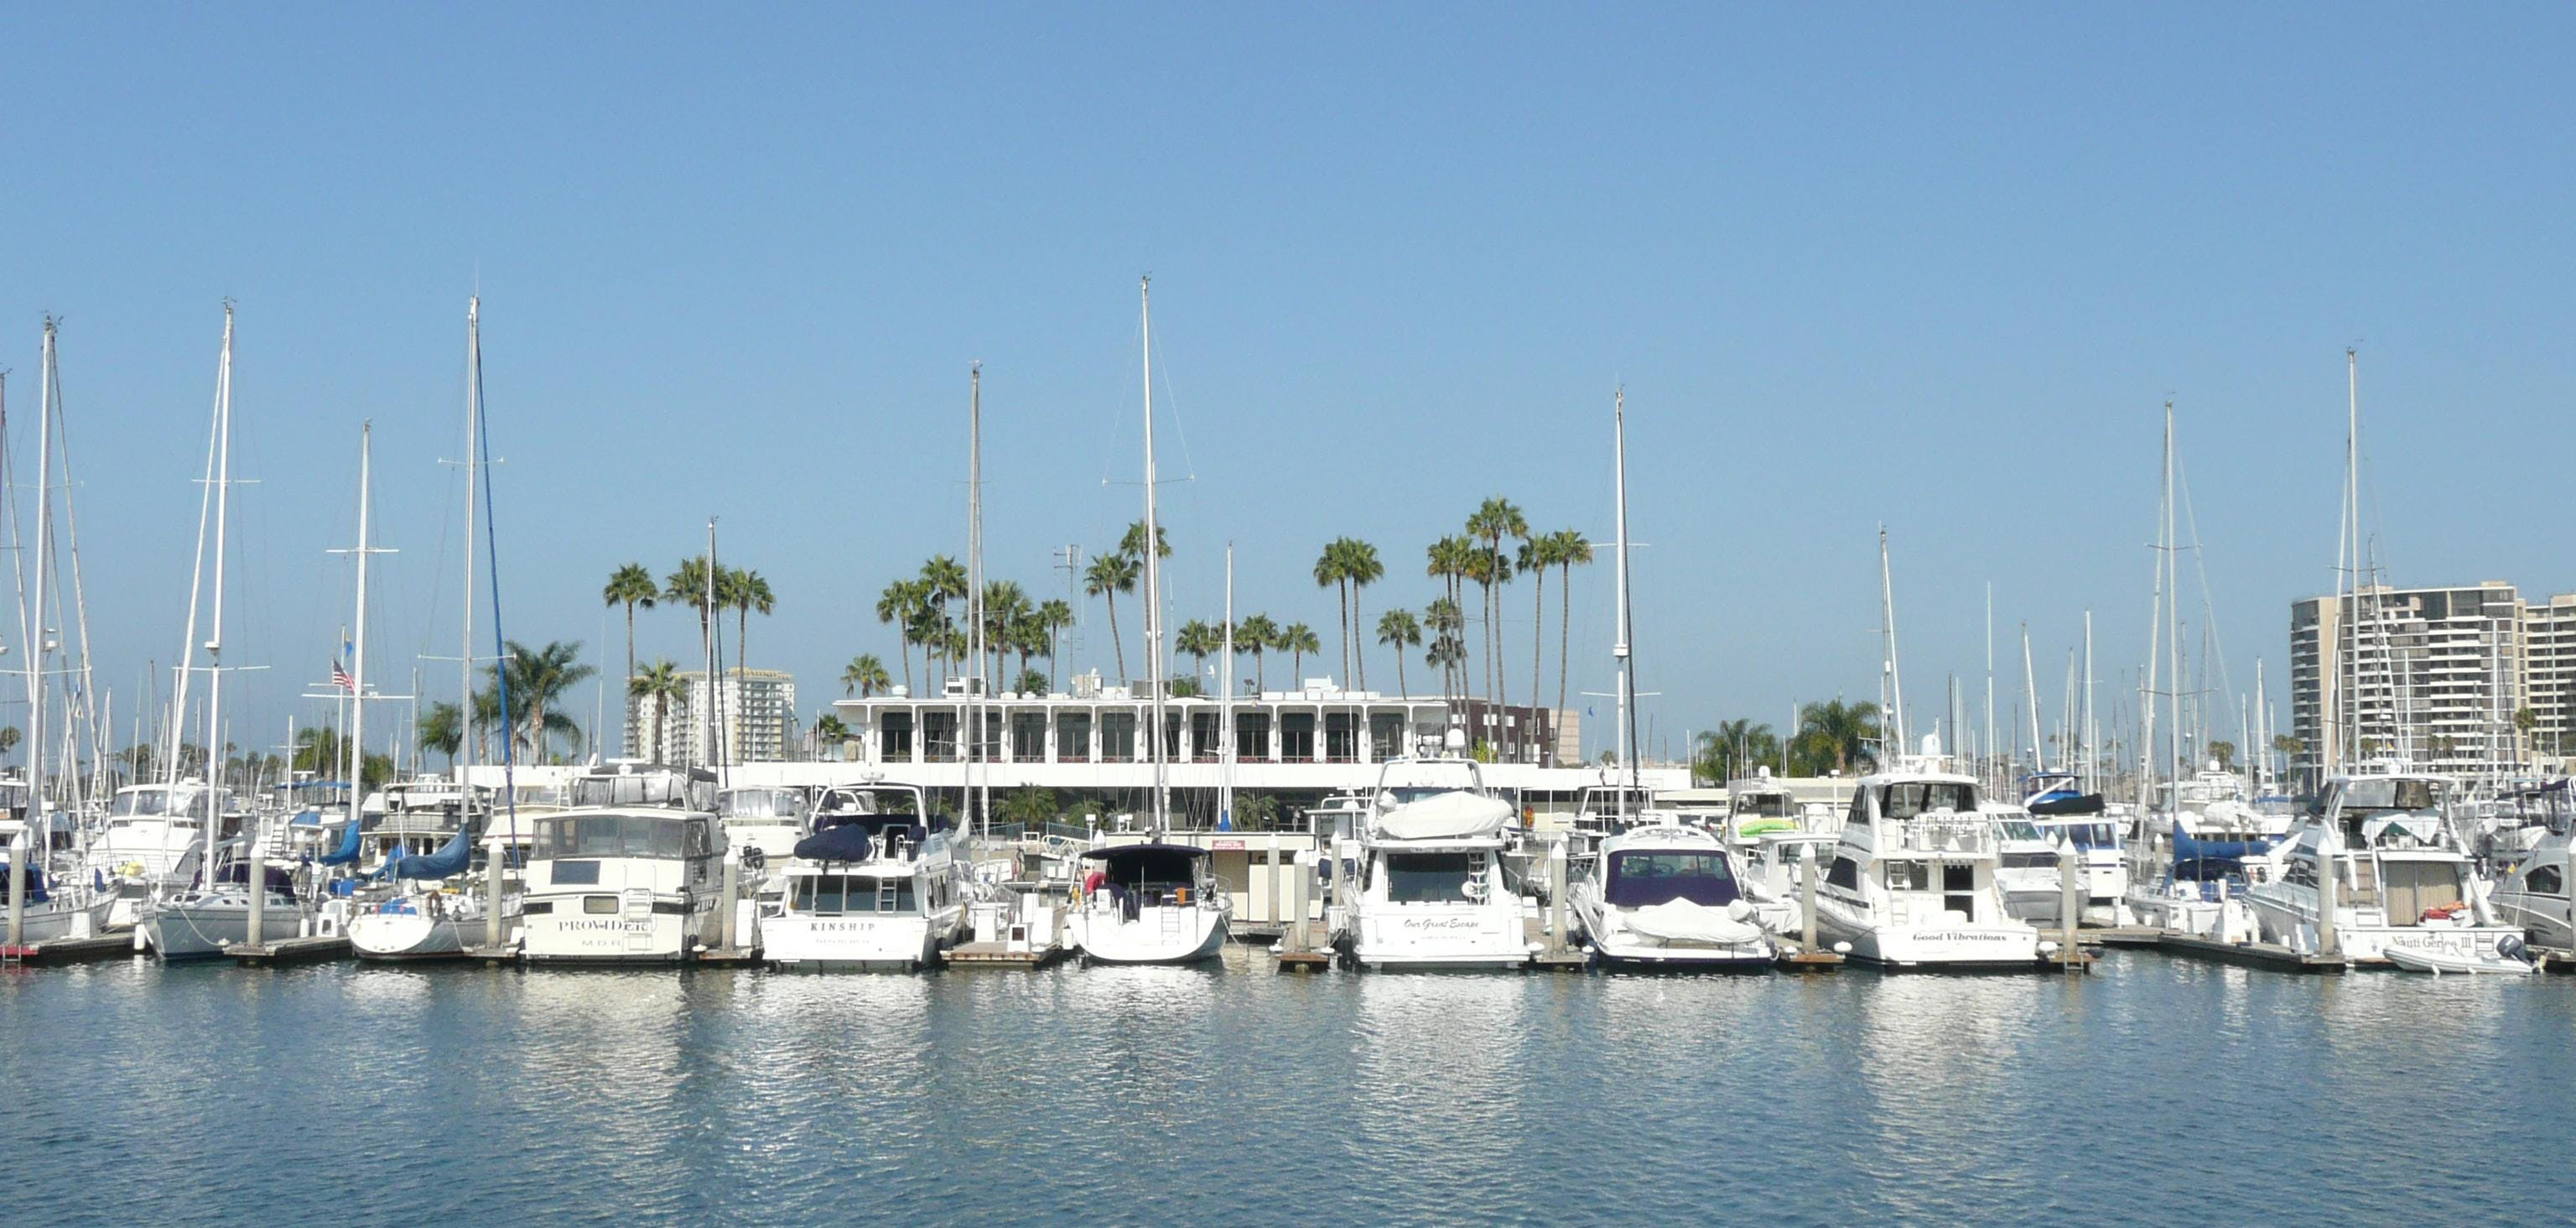 2019 Del Rey Yacht Club Spring Open House